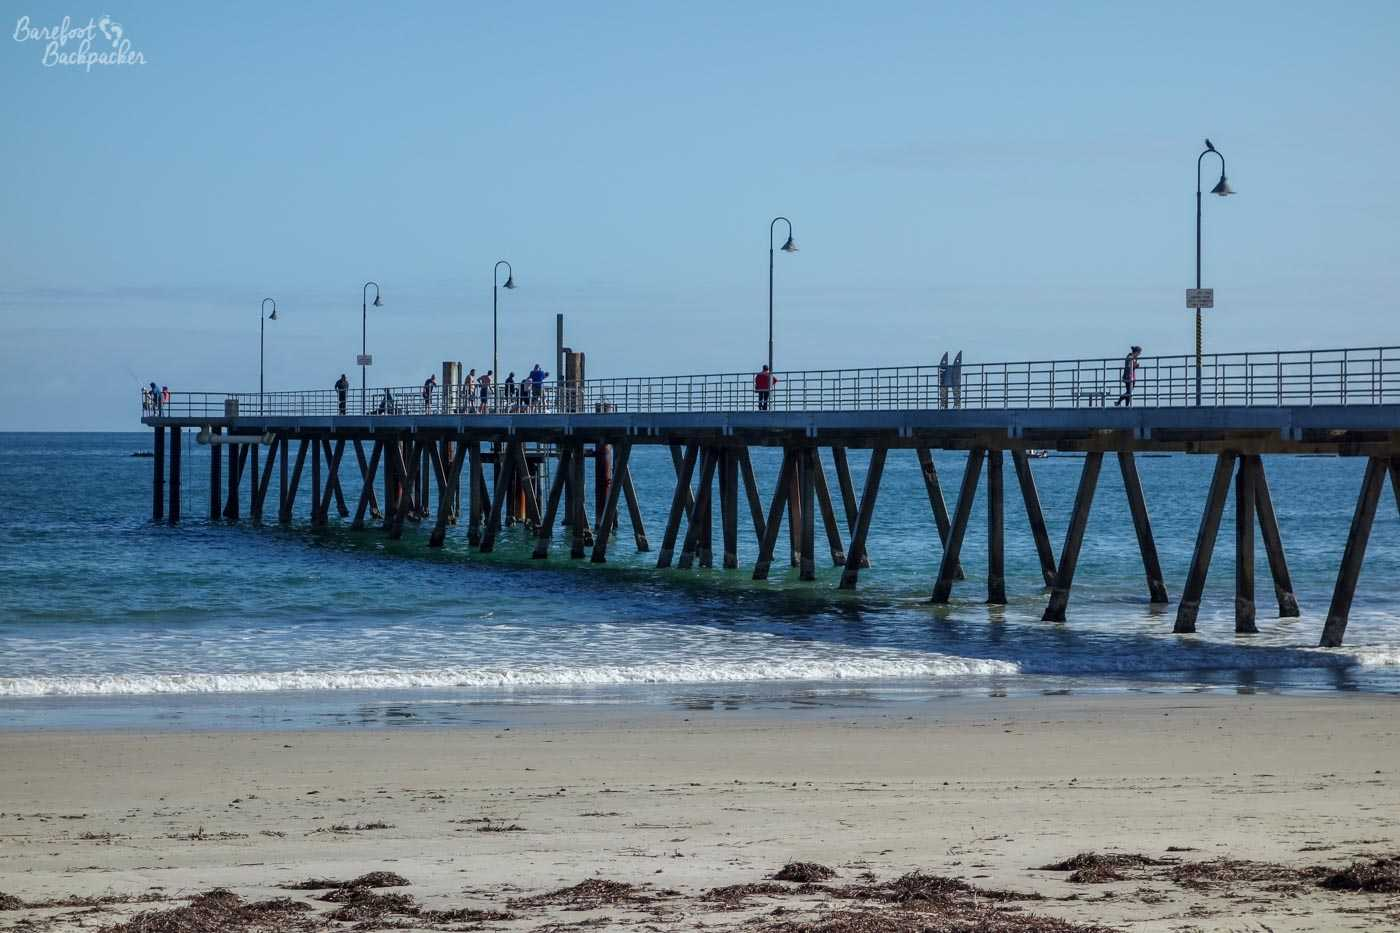 The pier at Glenelg, taken from the beach. It goes into the water quite a way. It's a wrought iron looking structure and, well, looks like pier. What more do you want from me?!